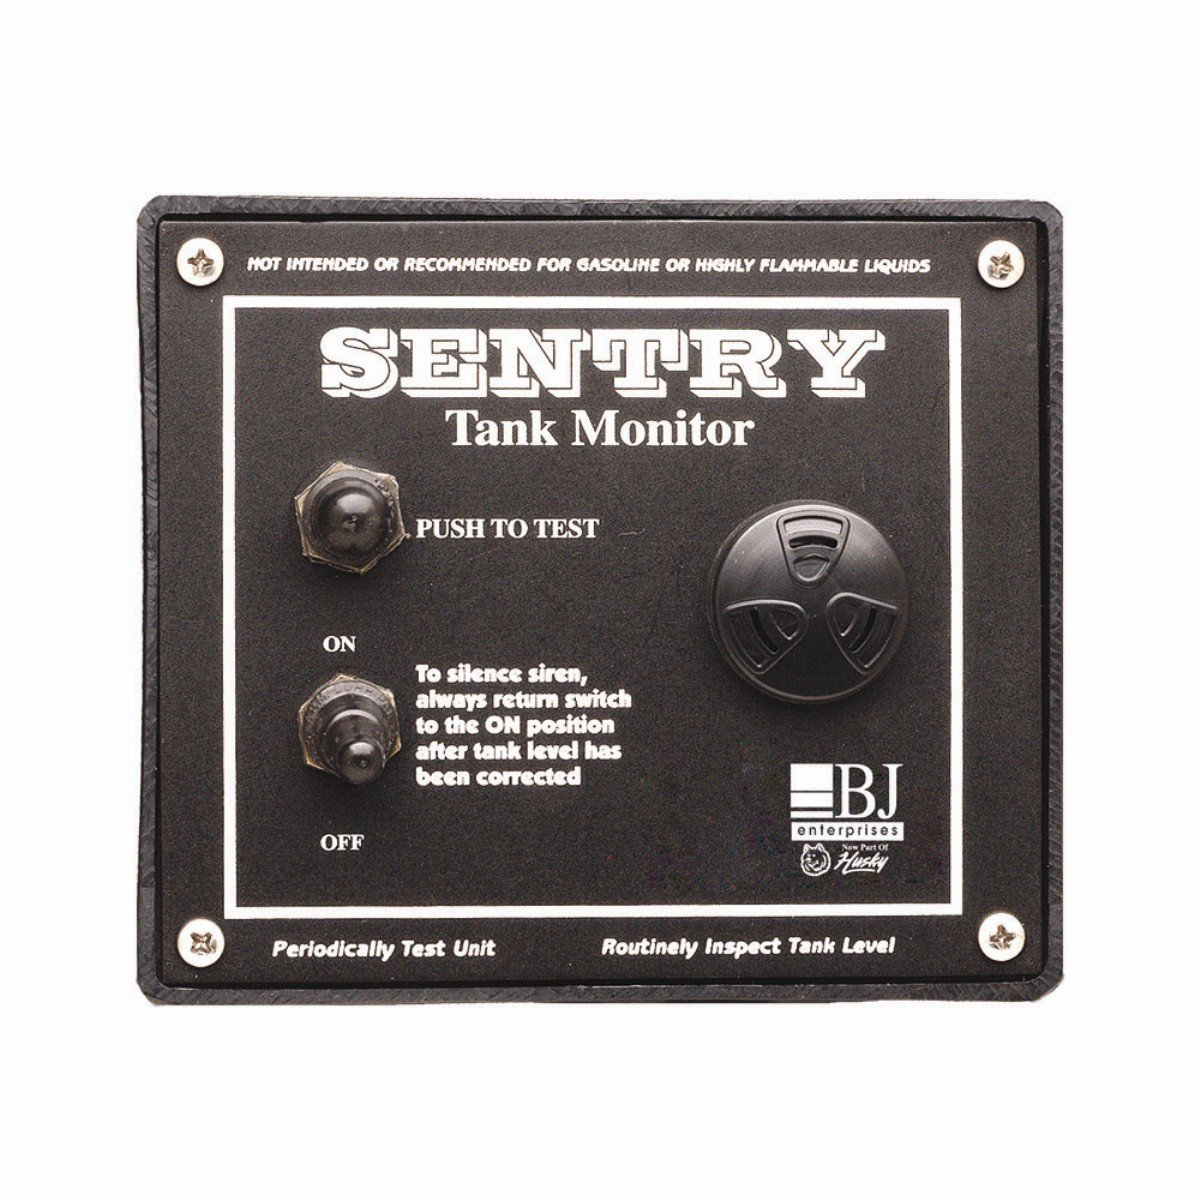 BJE 007725 Sentry Wall Mounted Tank Alarm with Built-In 103 Decibel Siren, Remote Tank Sensor and 9V Battery